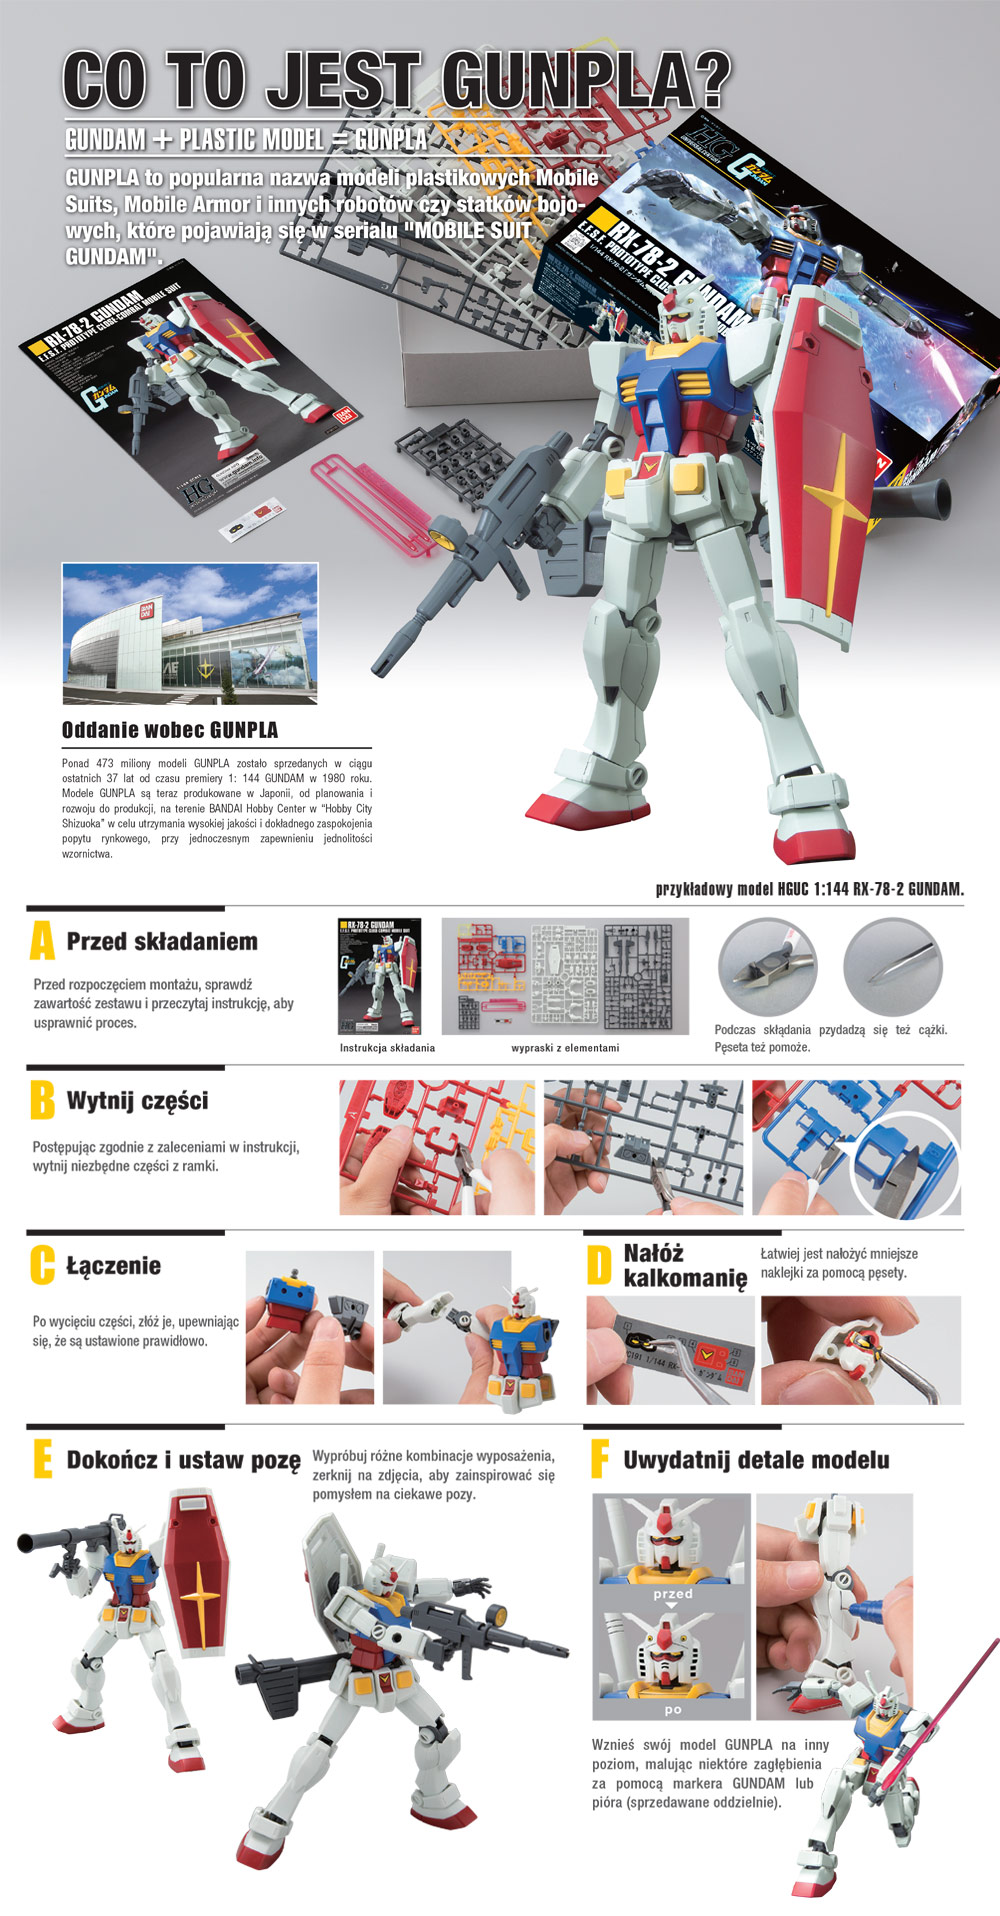 #FIGURE RISE EFFECT - BURST EFFECT (SPACE PINK)